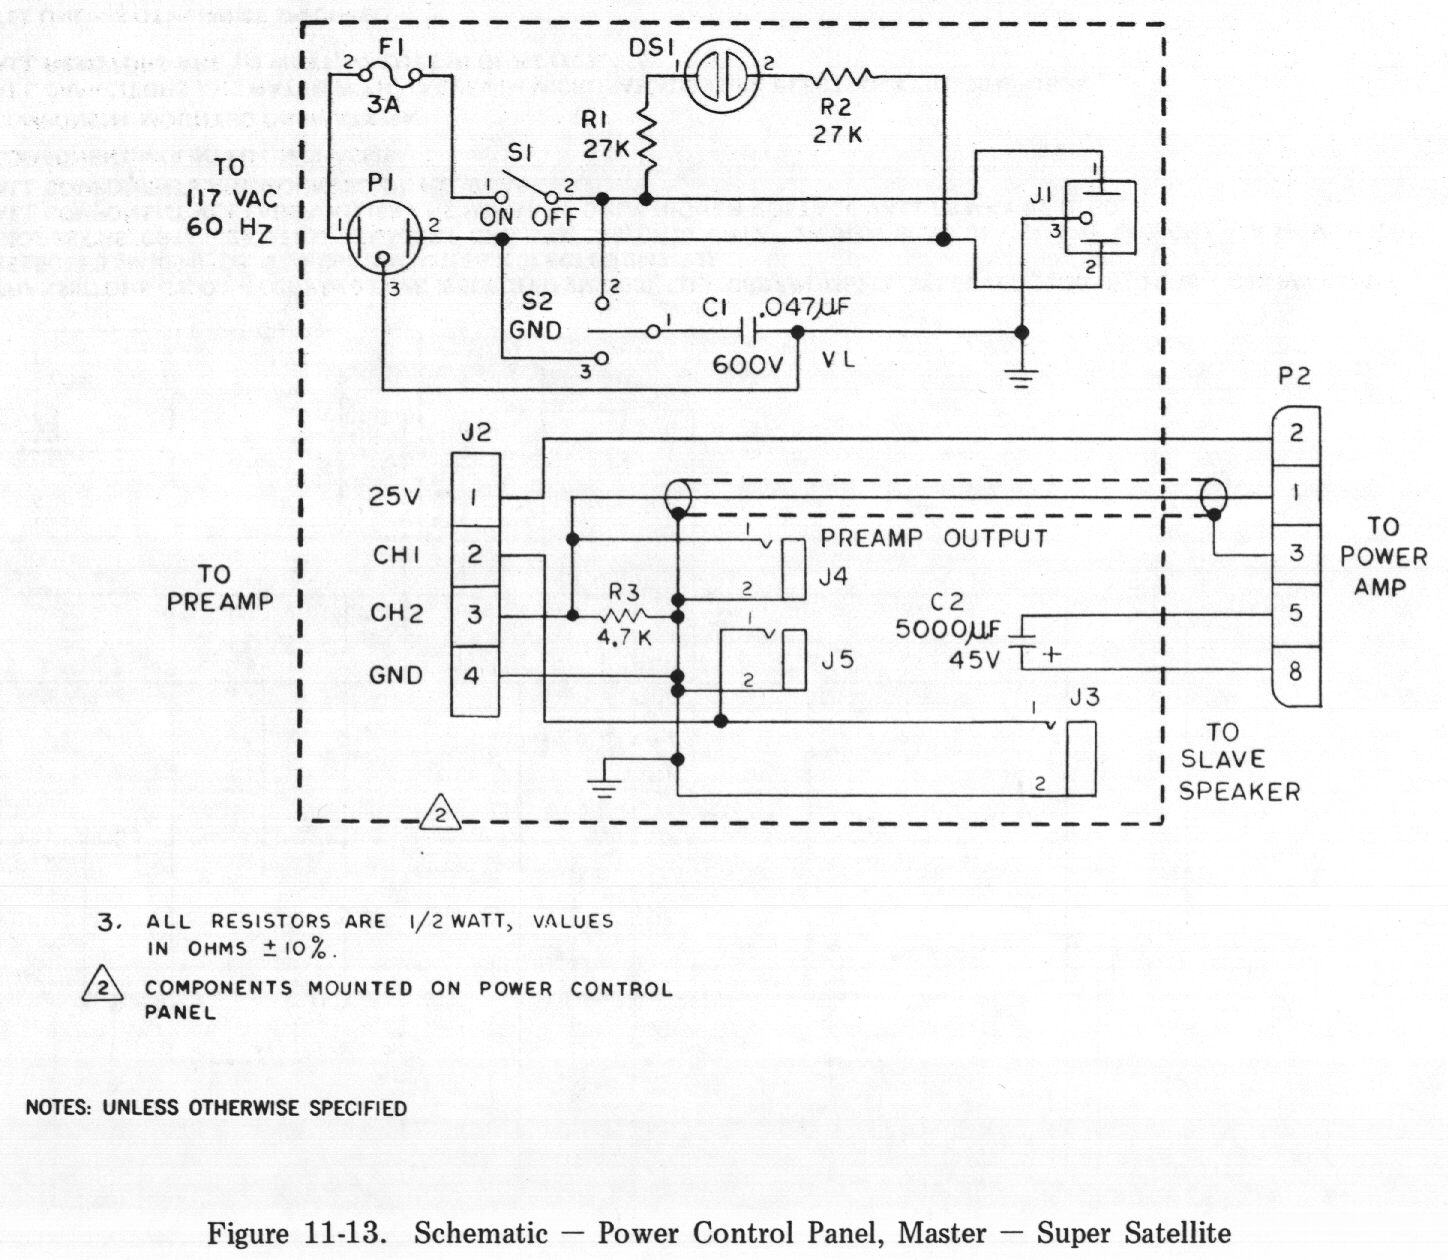 Chapter 11 Diagrams Schematics And Pictorials 2 Watt Amplifier Circuit Schematic Power Control Panel Master Super Satellite